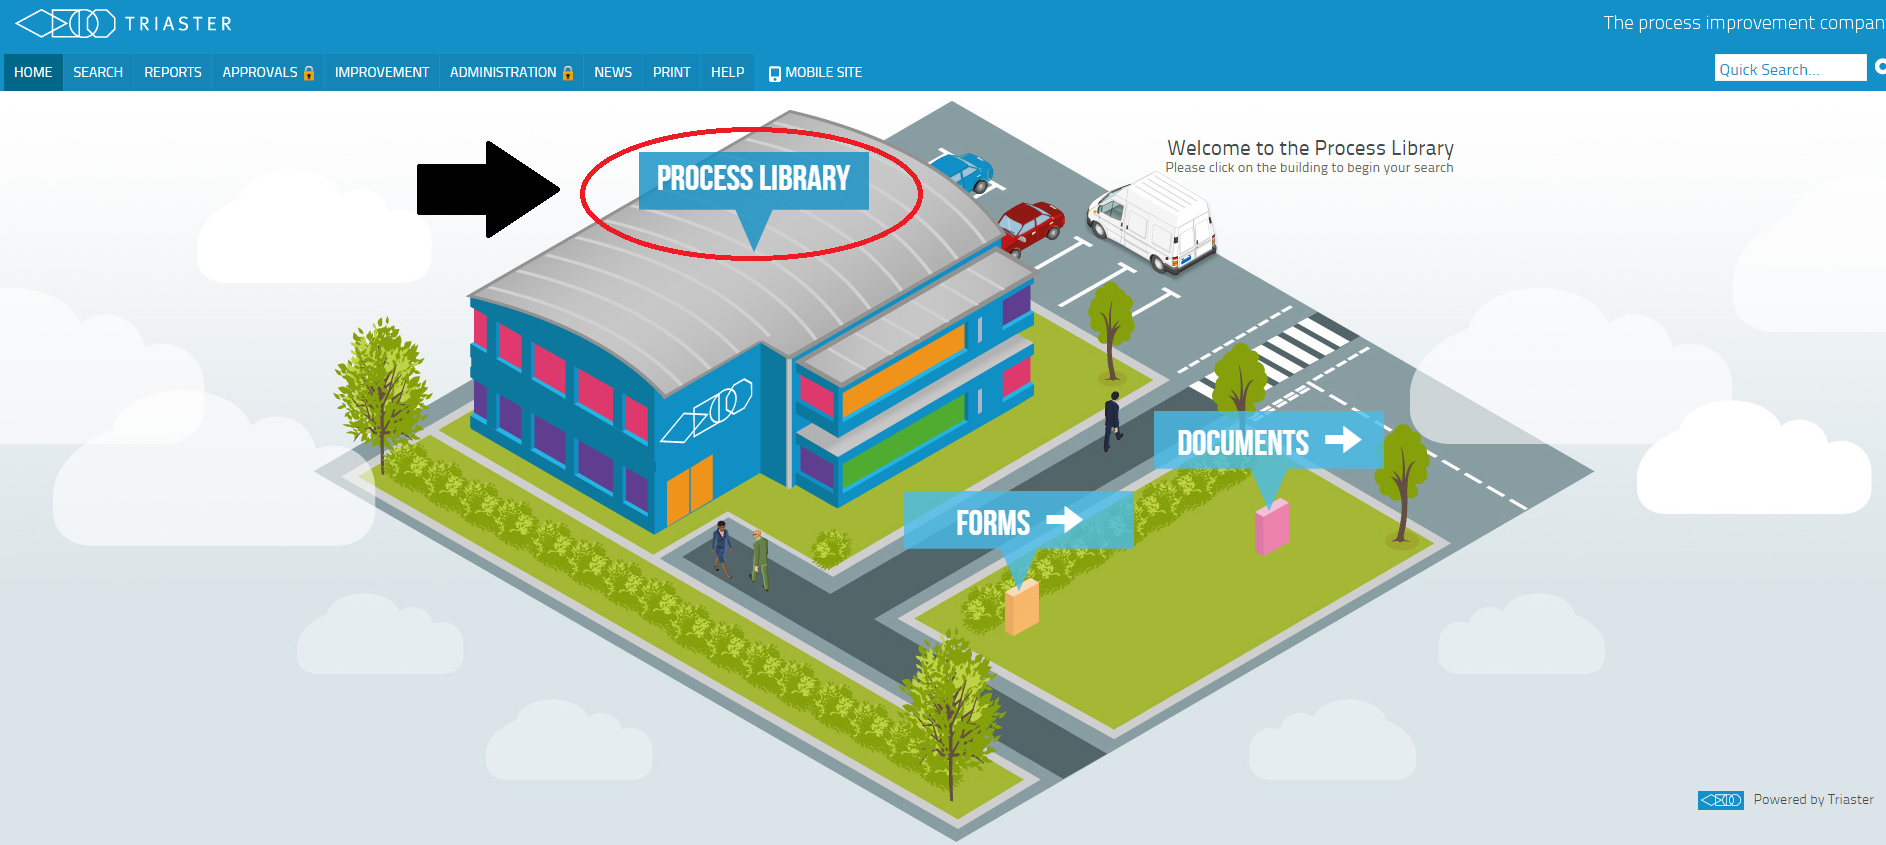 Triaster process library 1-2.png